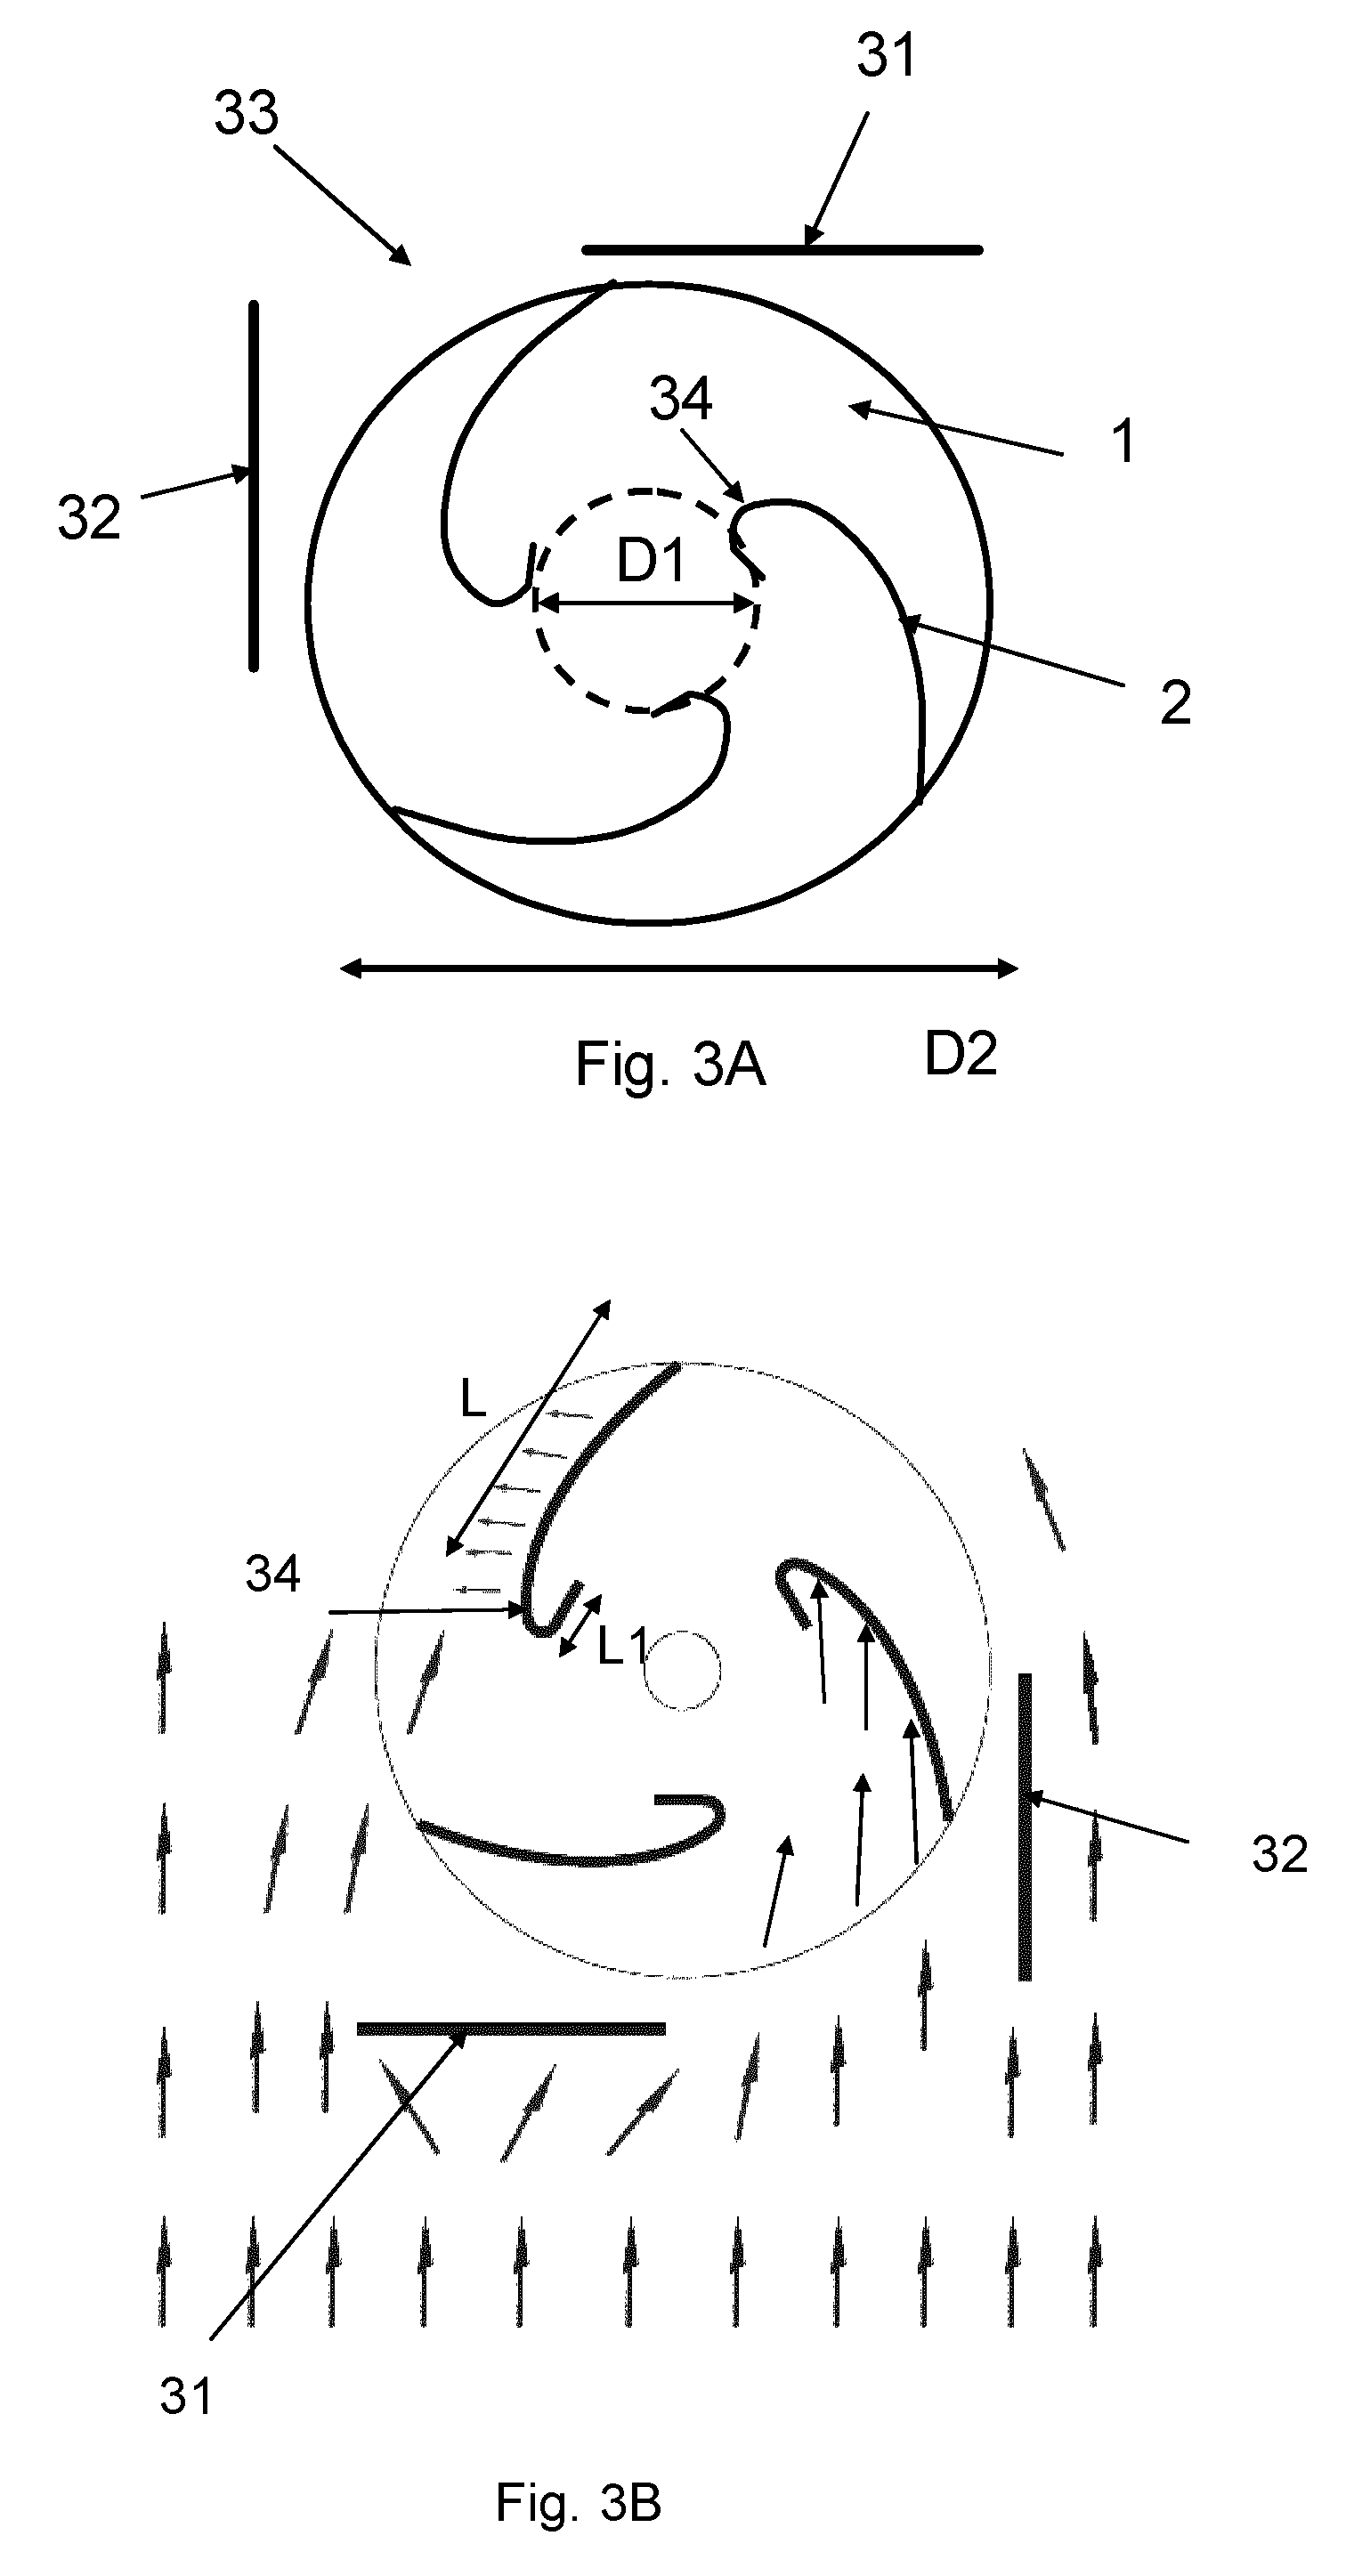 small resolution of wo2012089806a1 wind turbine with vertical axis